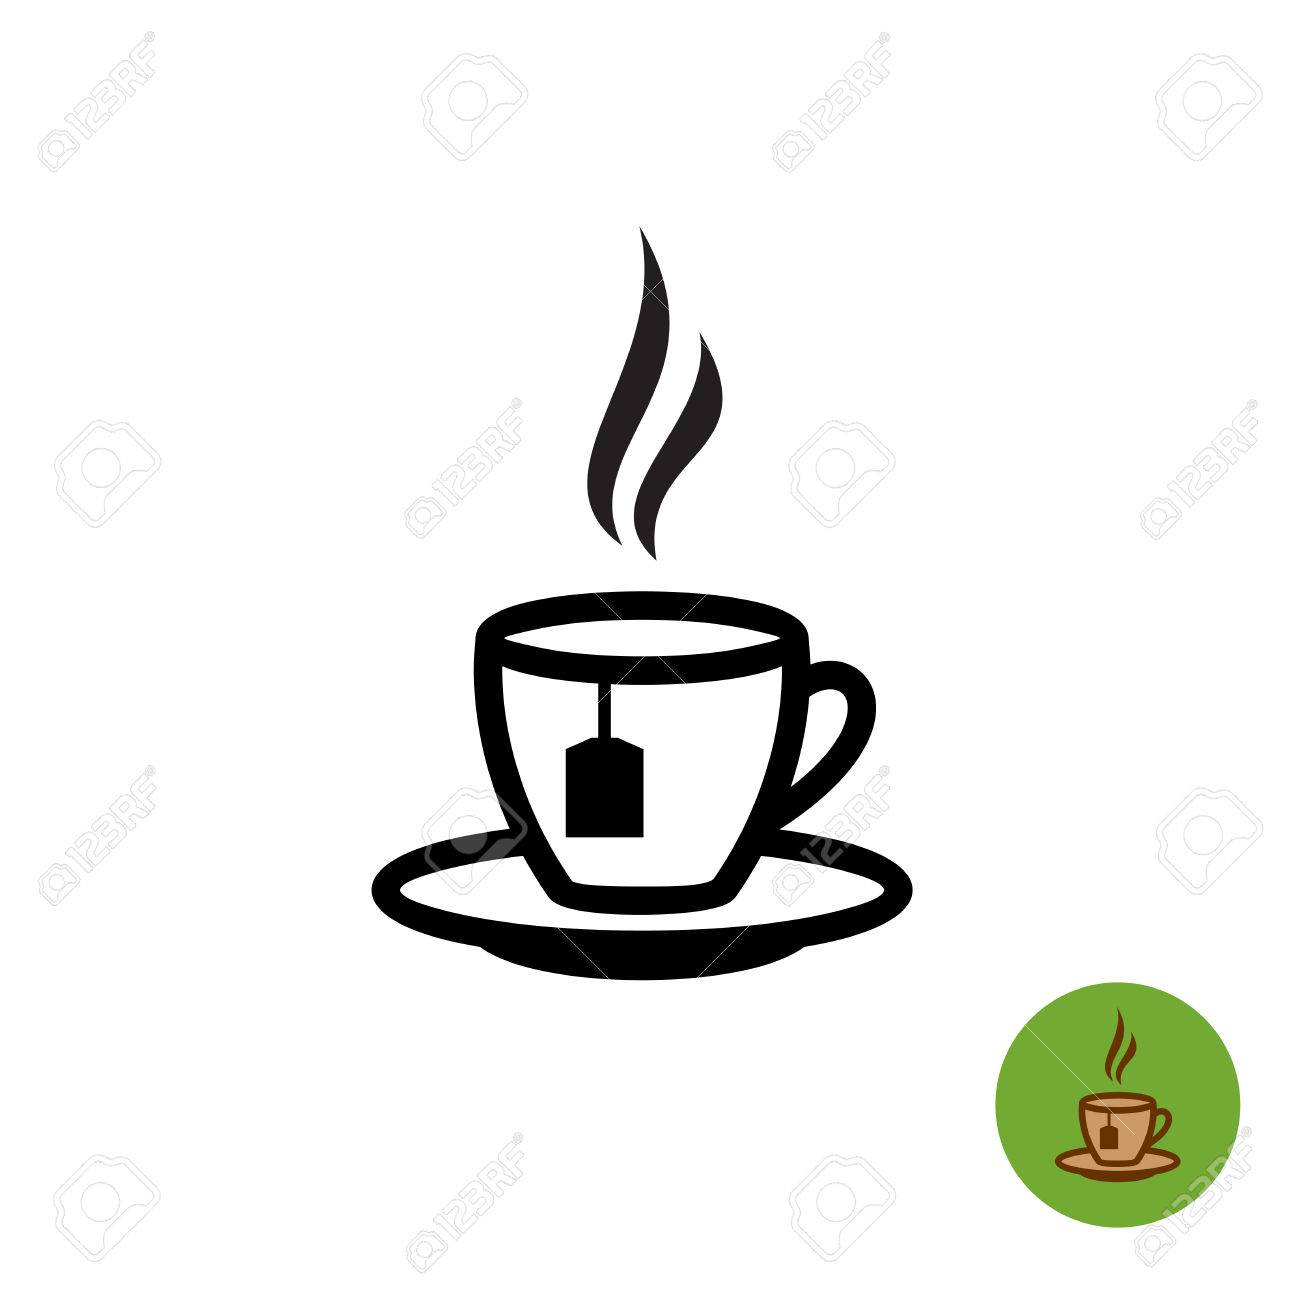 tea cup black outline silhouette with teabag and fume icon royalty